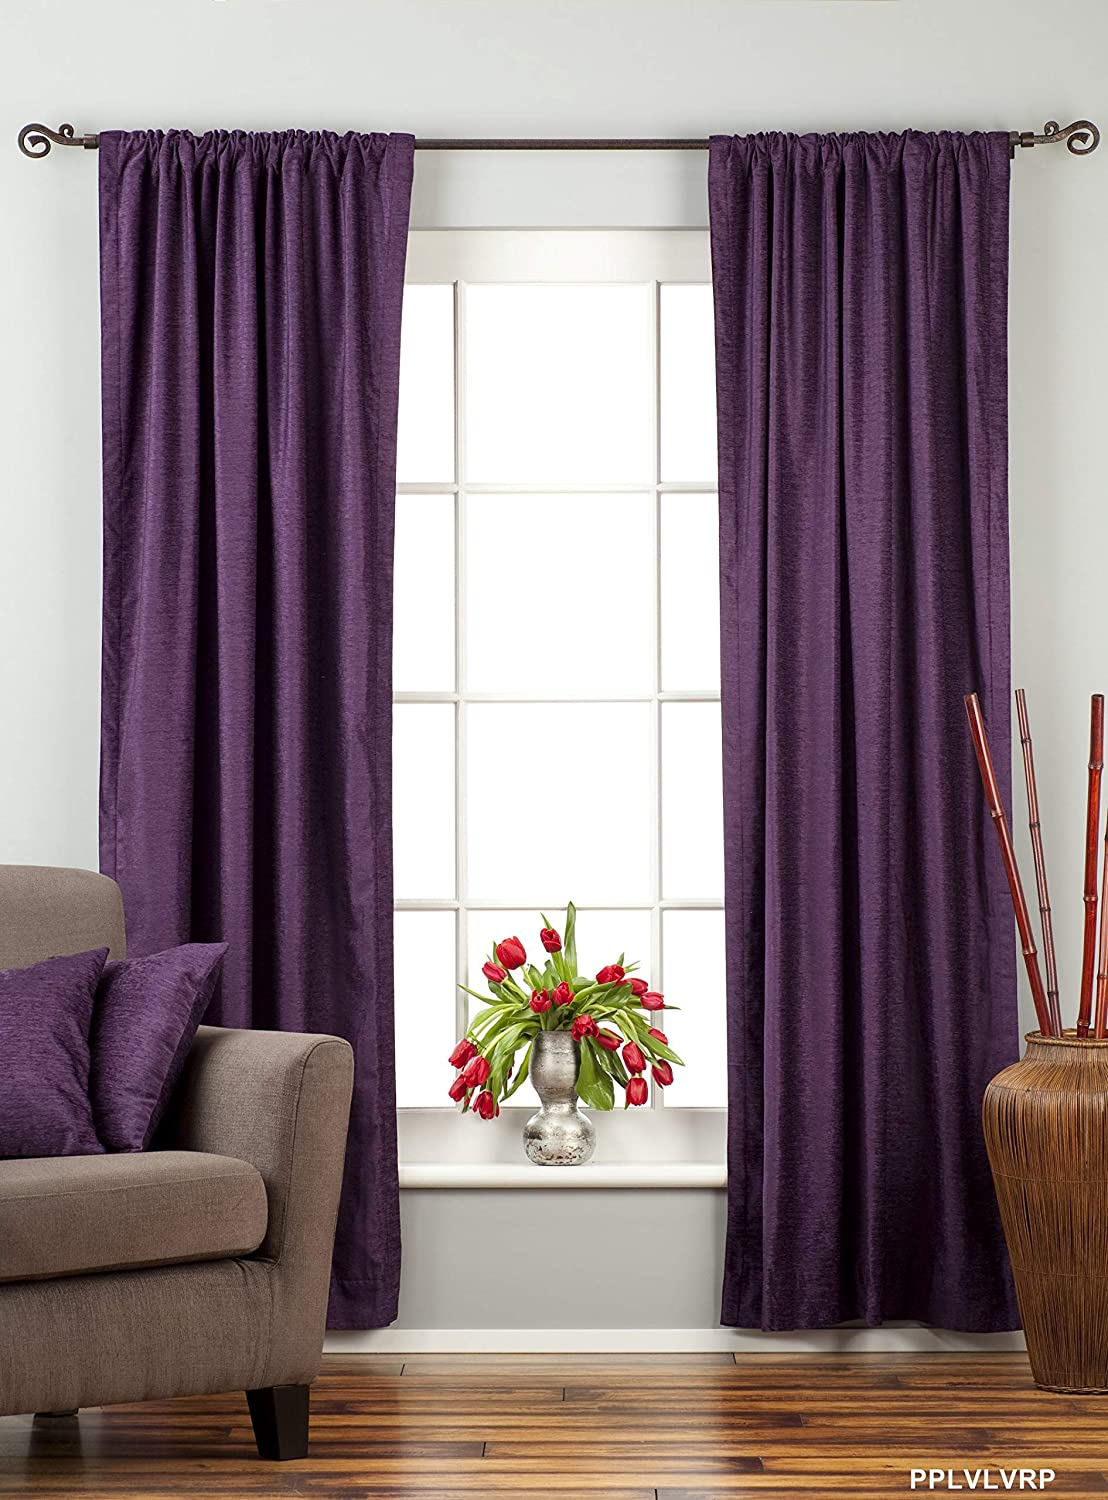 Buy Lined-Purple Rod Pocket Velvet Cafe Curtain/Drape - 43W x 24L - Piece  Online at Low Prices in India - Amazon.in